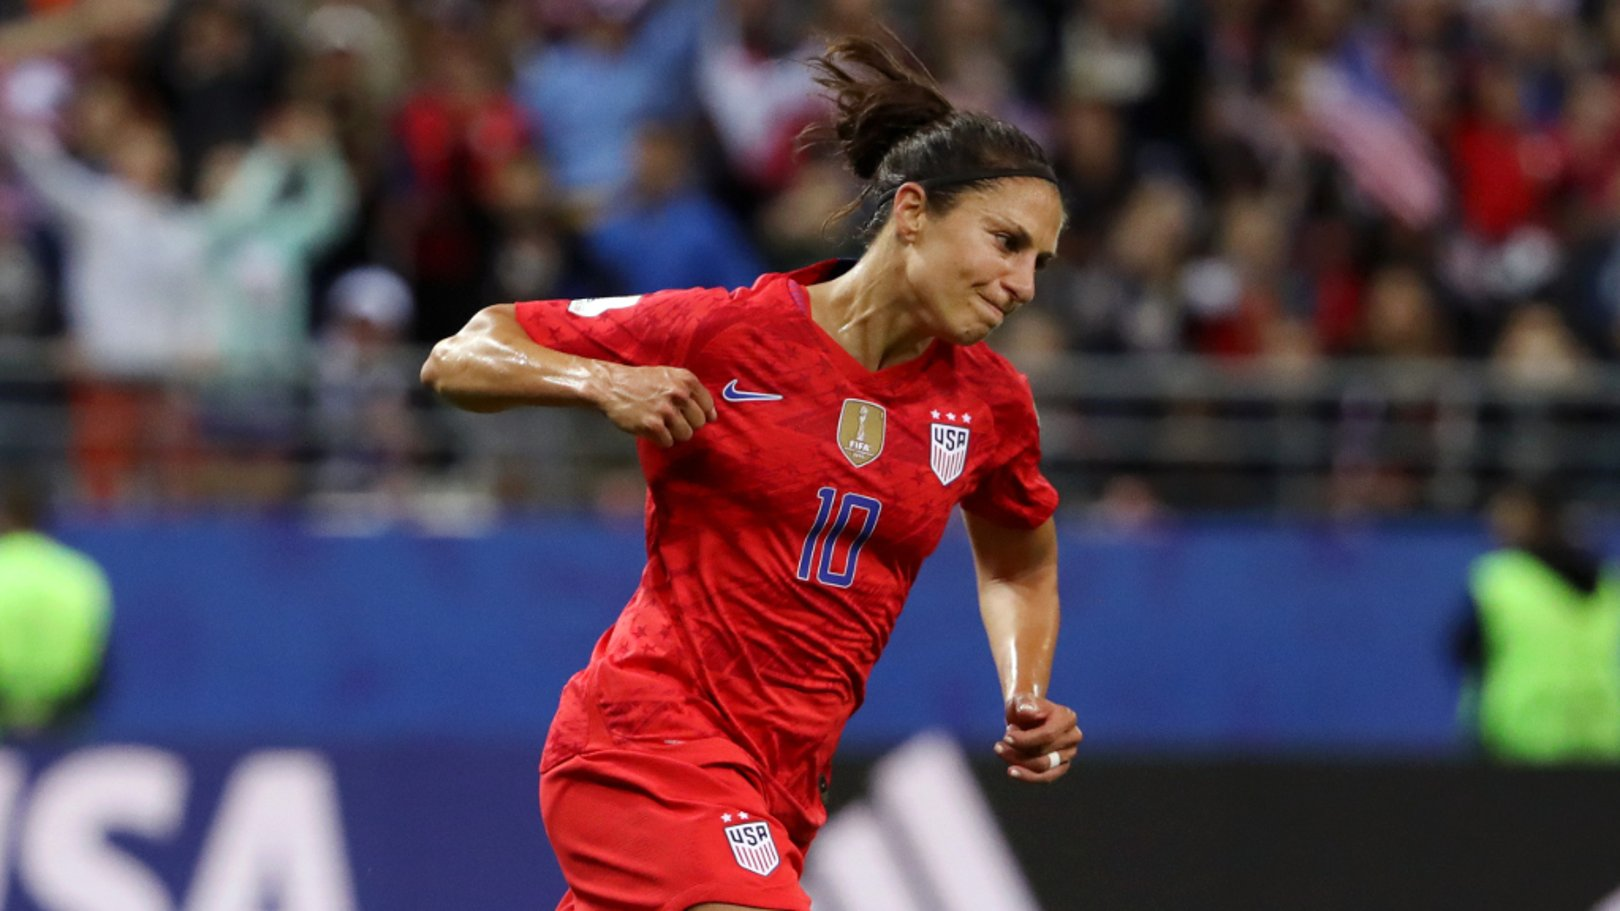 LUCKY 13: Carli Lloyd bagged the USA's THIRTEENTH goal against Thailand in their Group F opener!